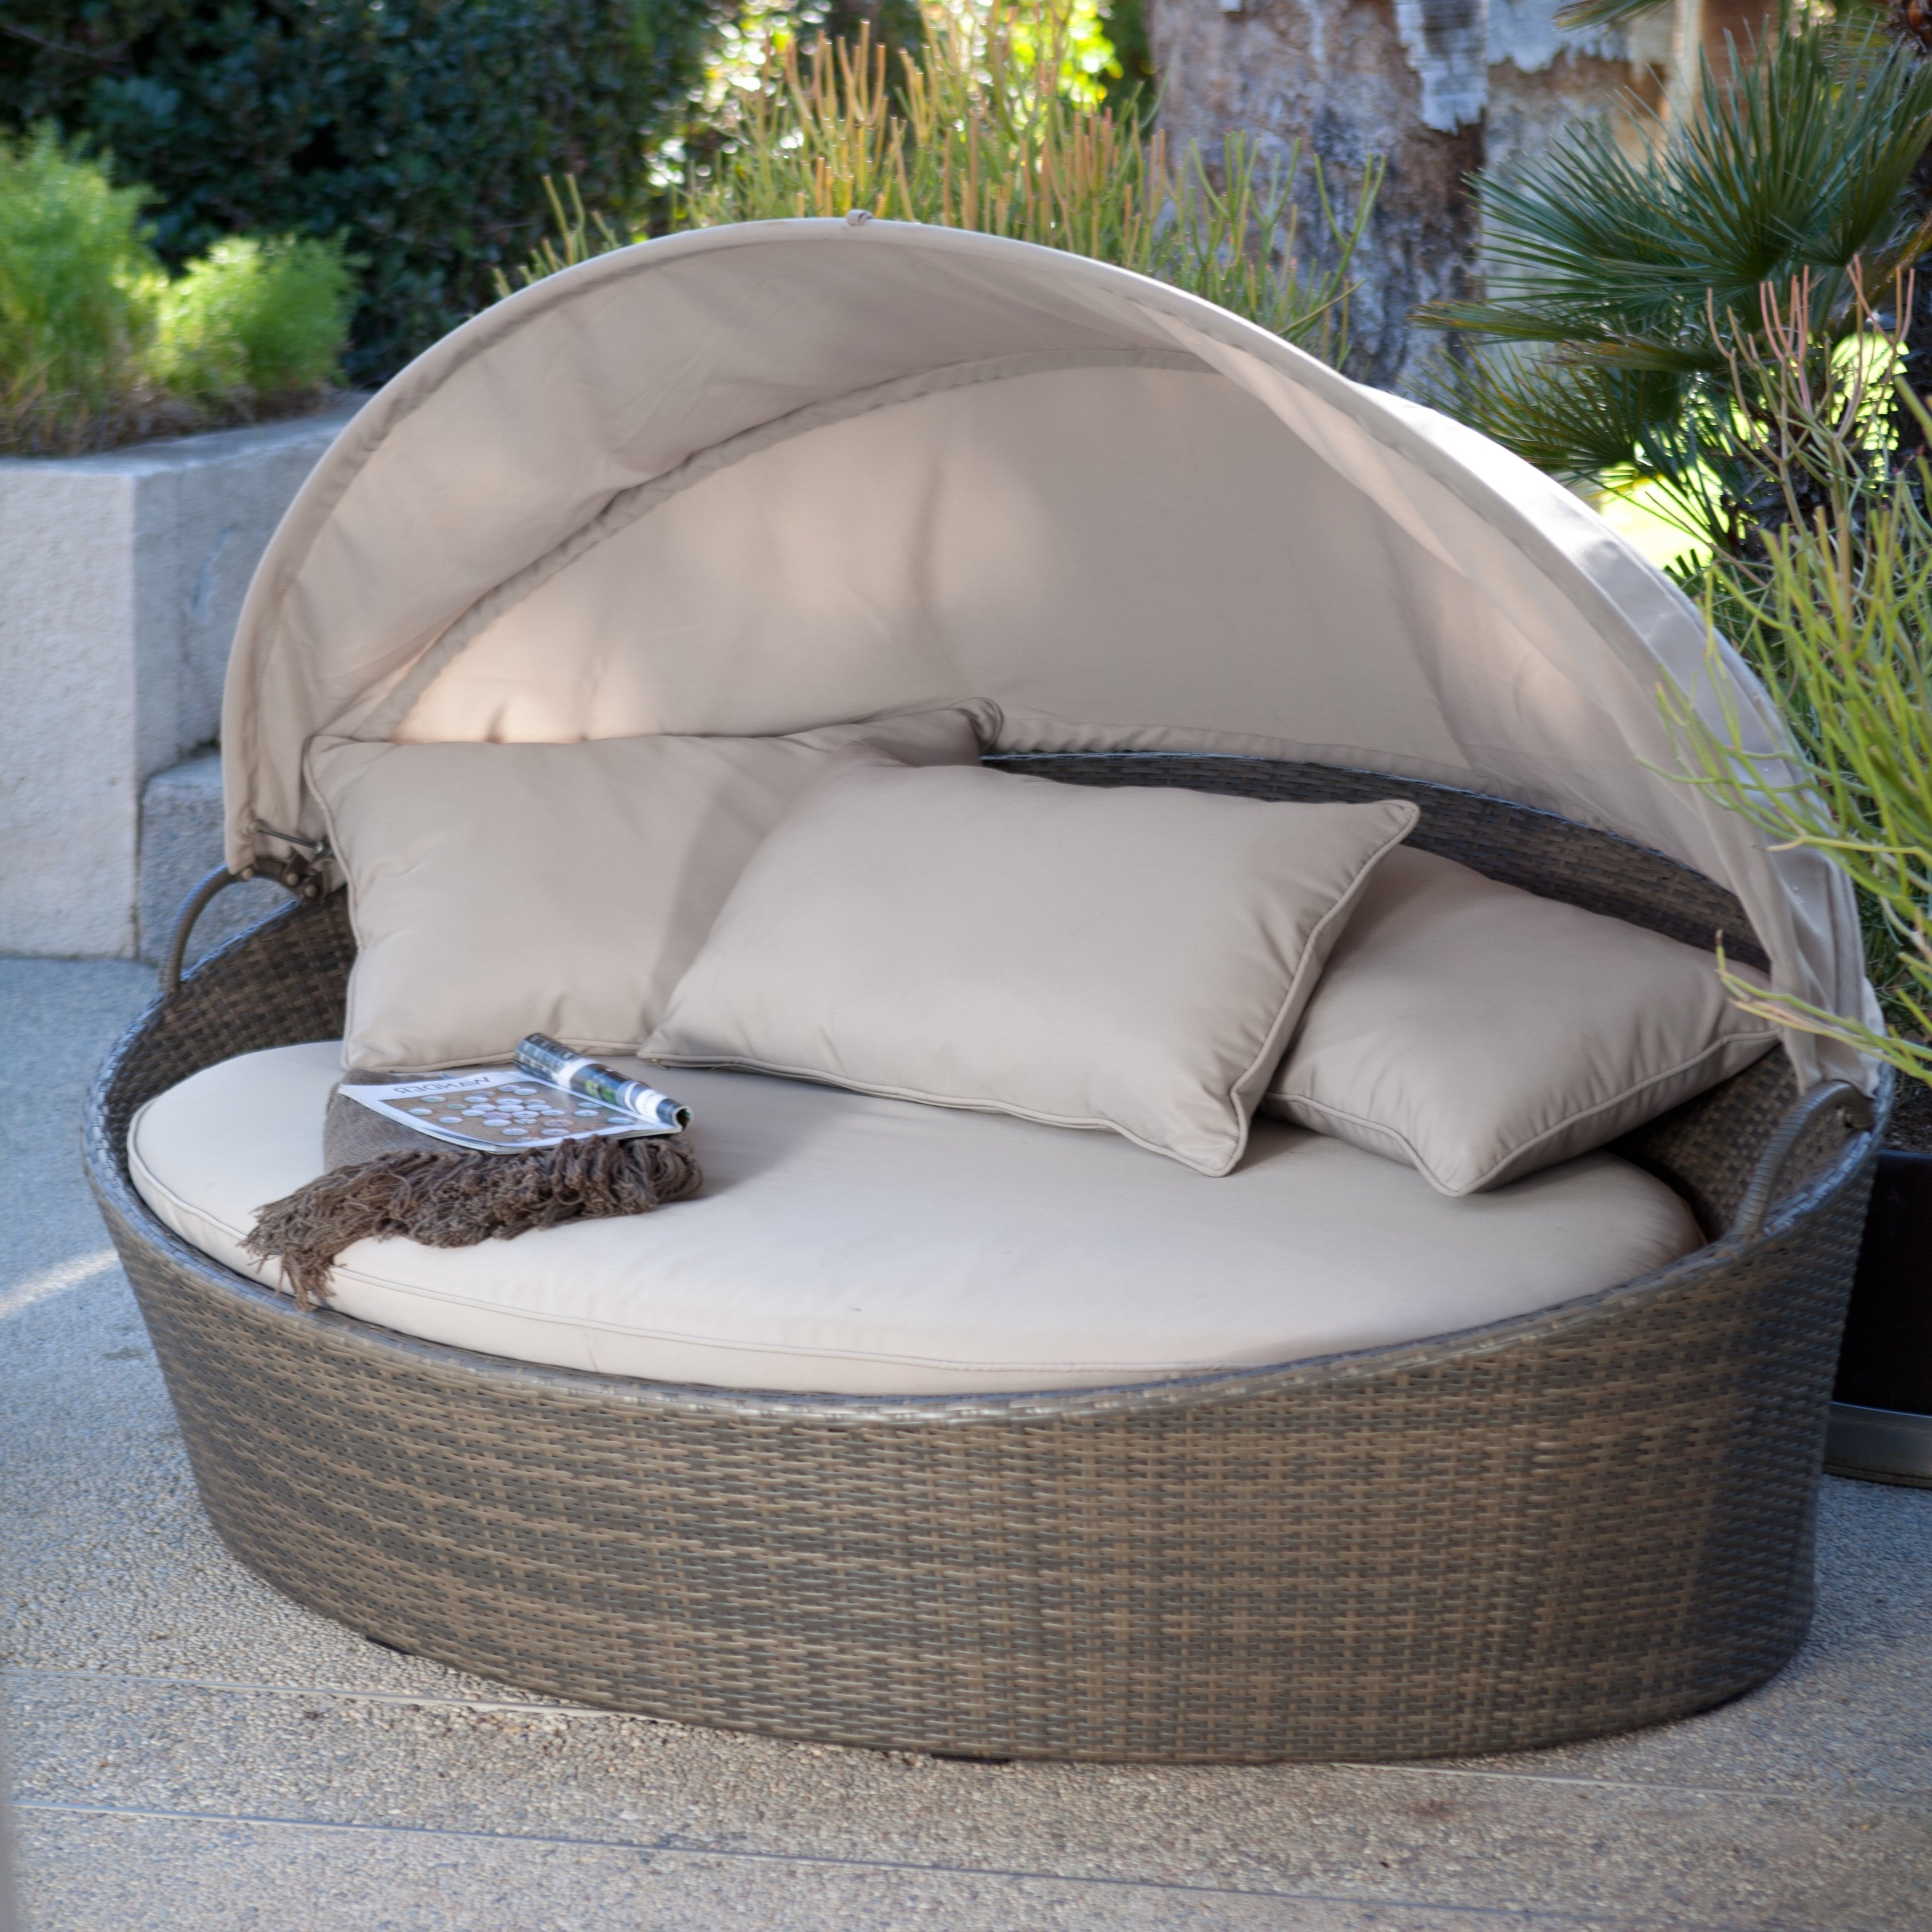 Favorite Outdoor Chaise Lounge Chairs With Canopy Regarding Have To Have It (View 11 of 15)